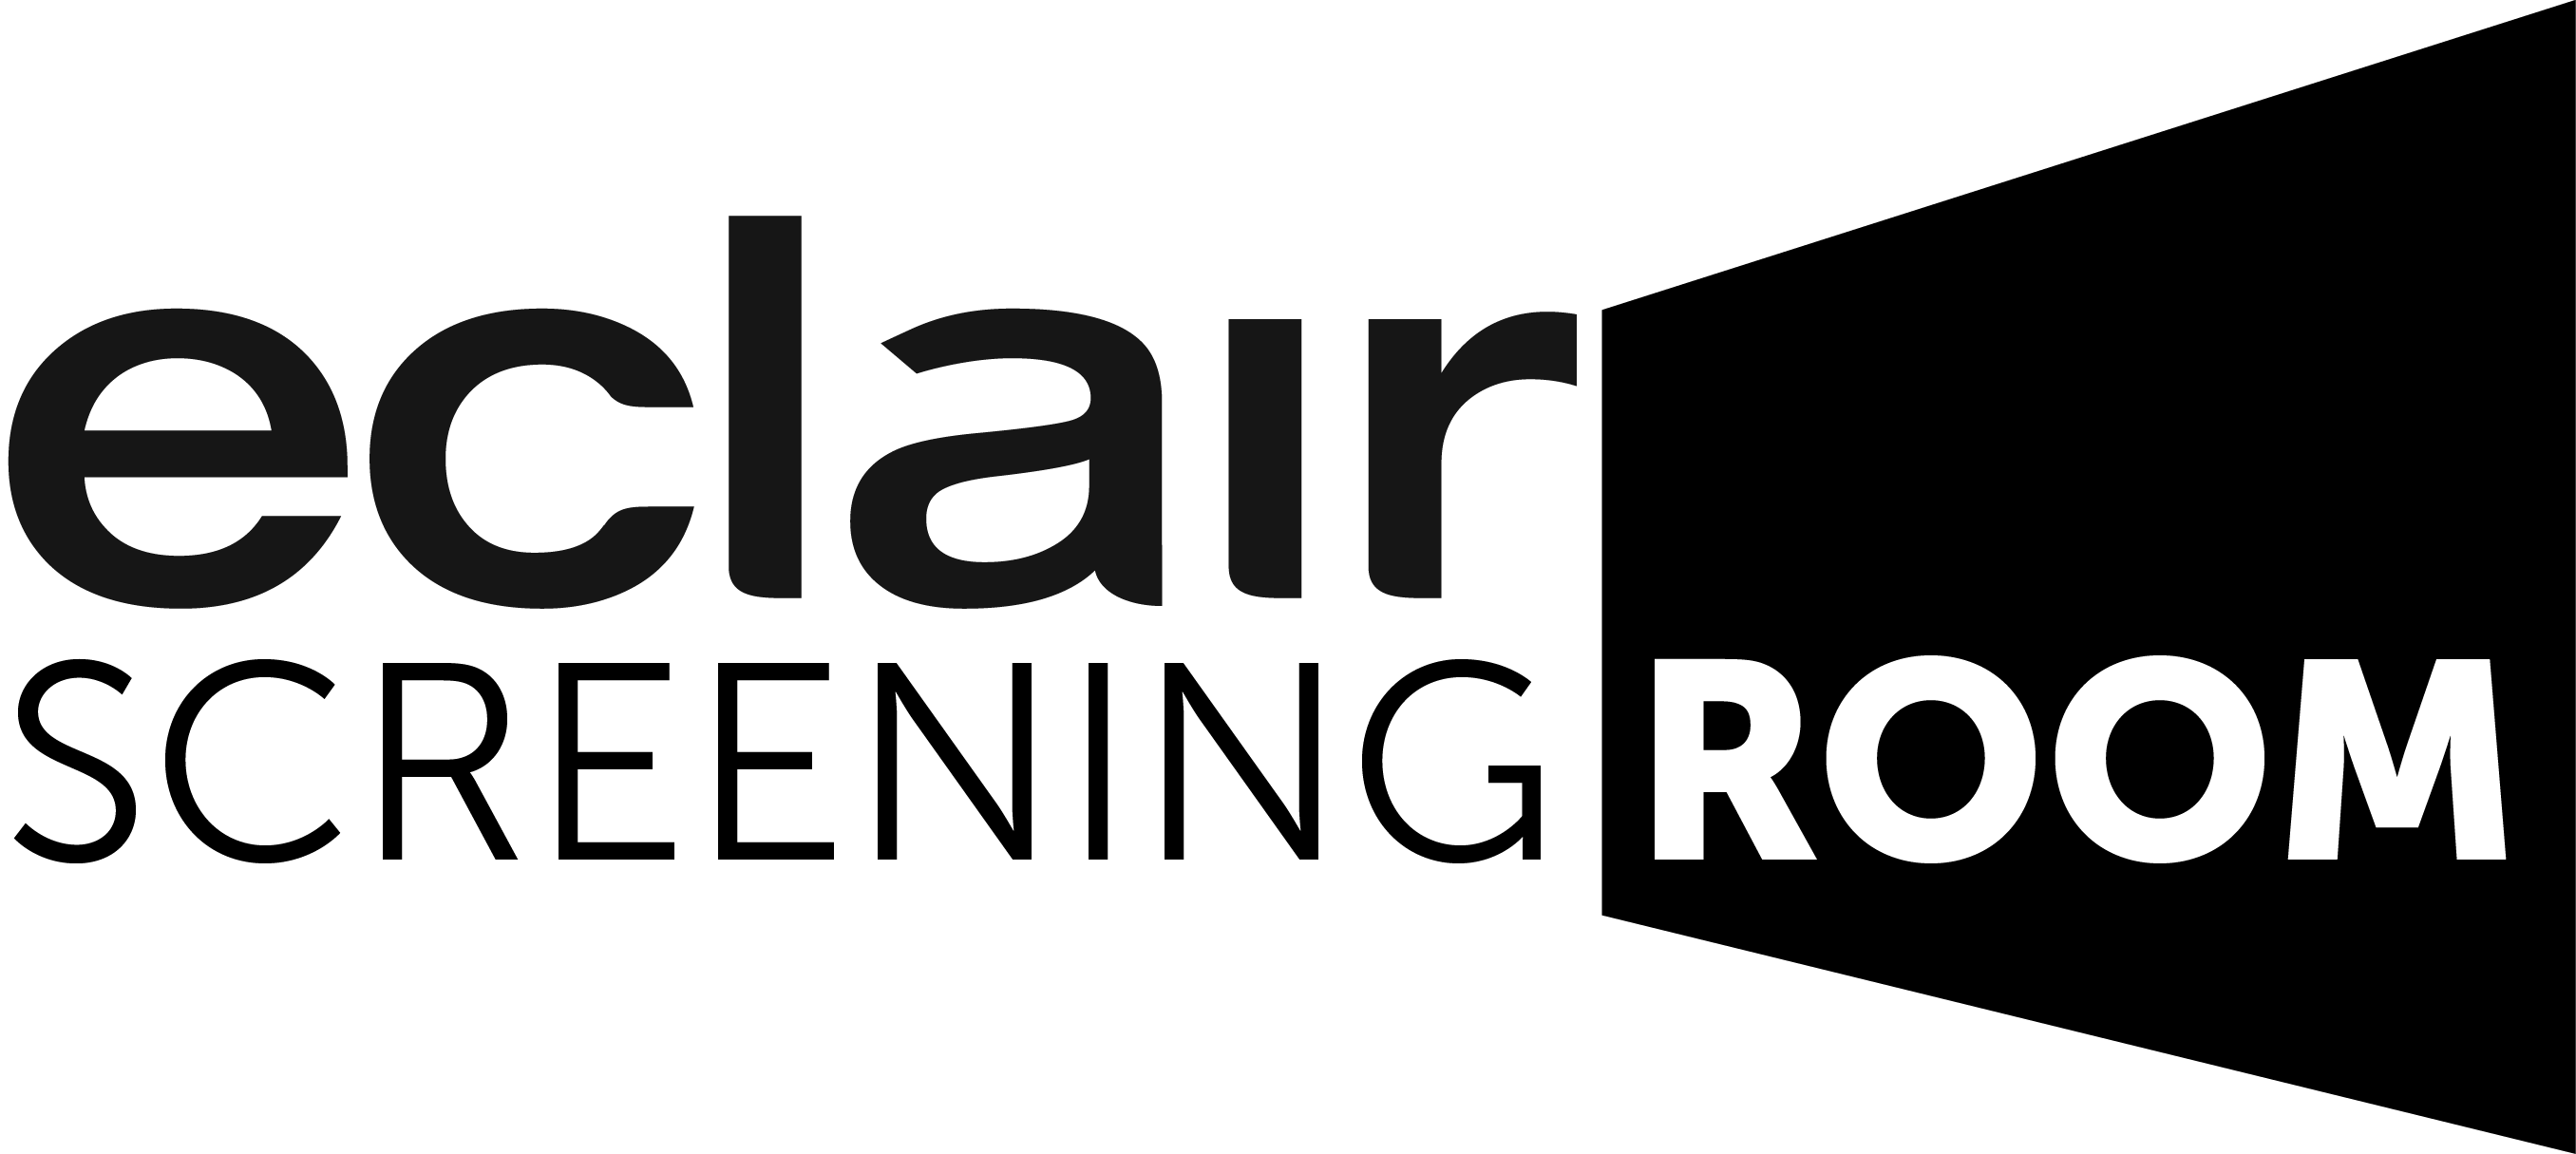 Eclair  Screening Room logo